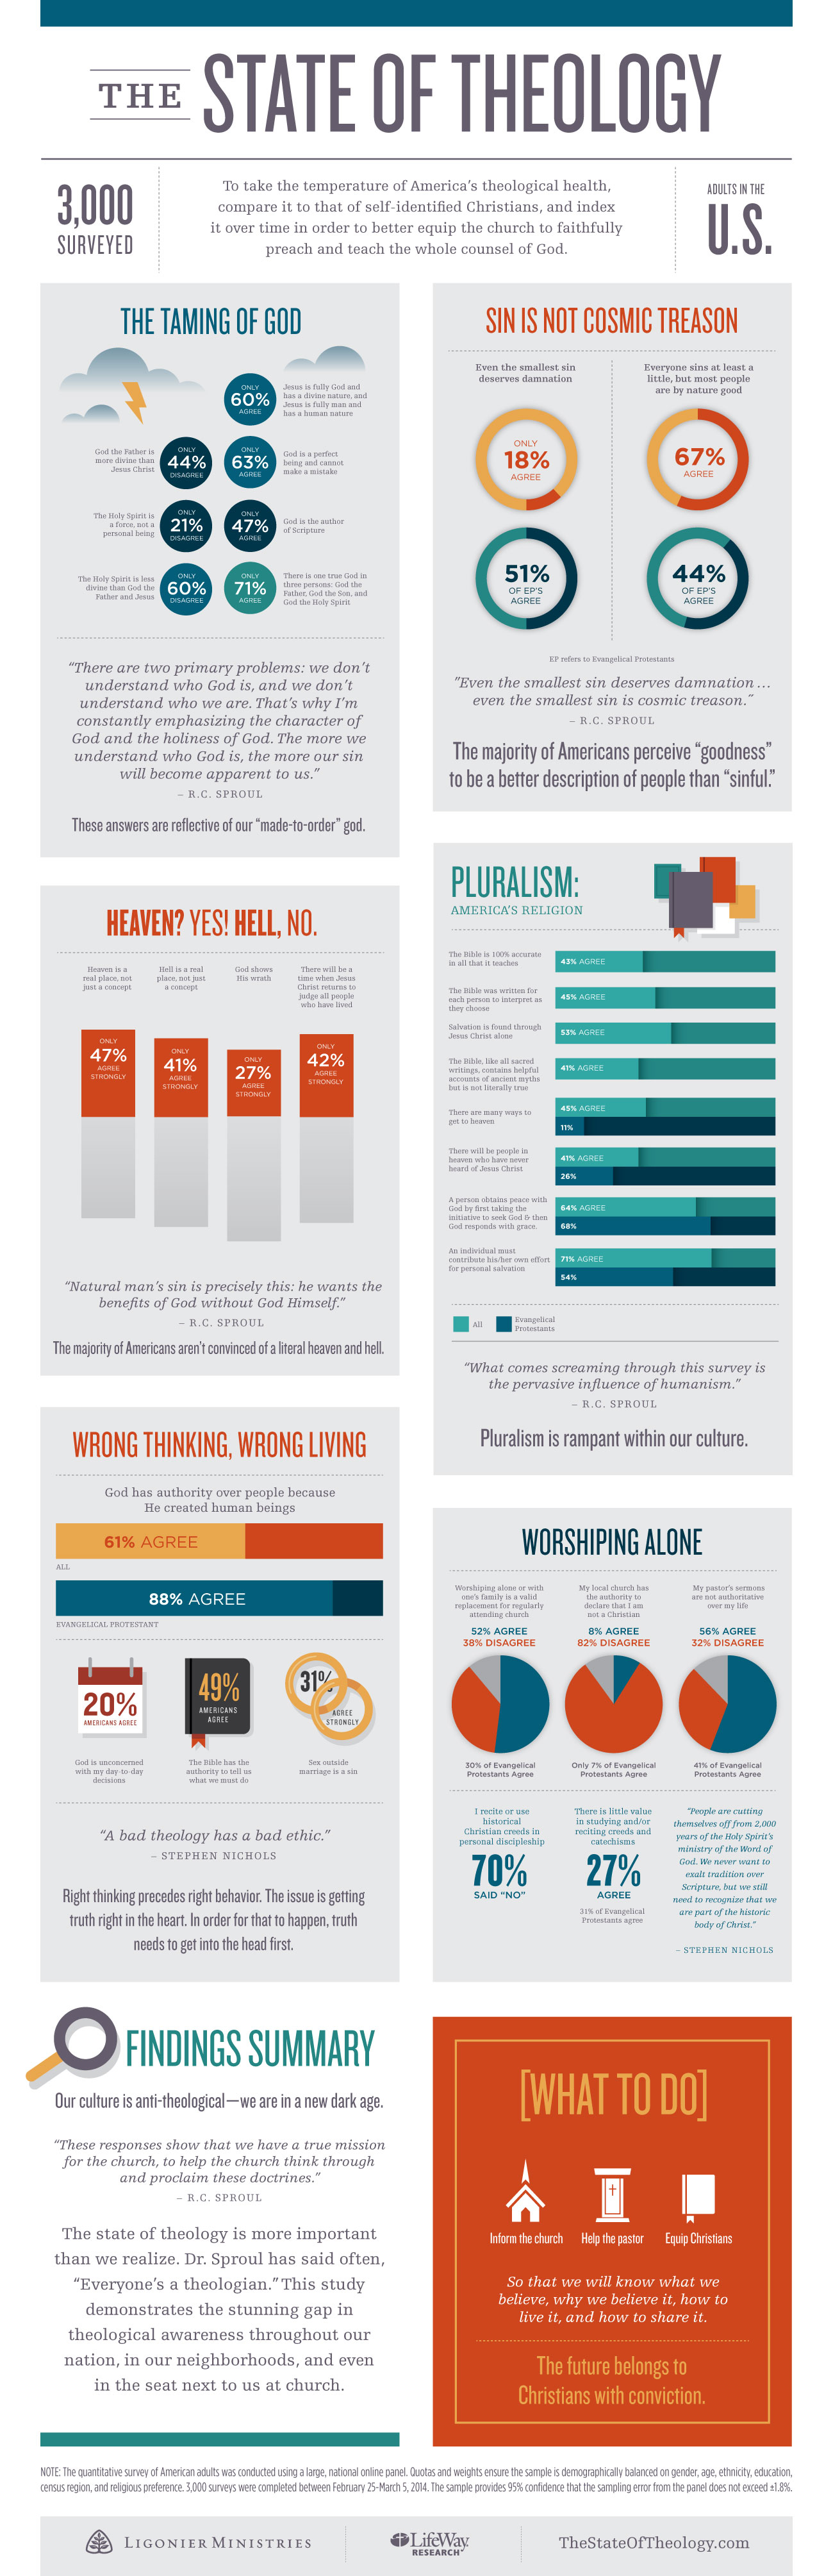 The State of Theology Infographic